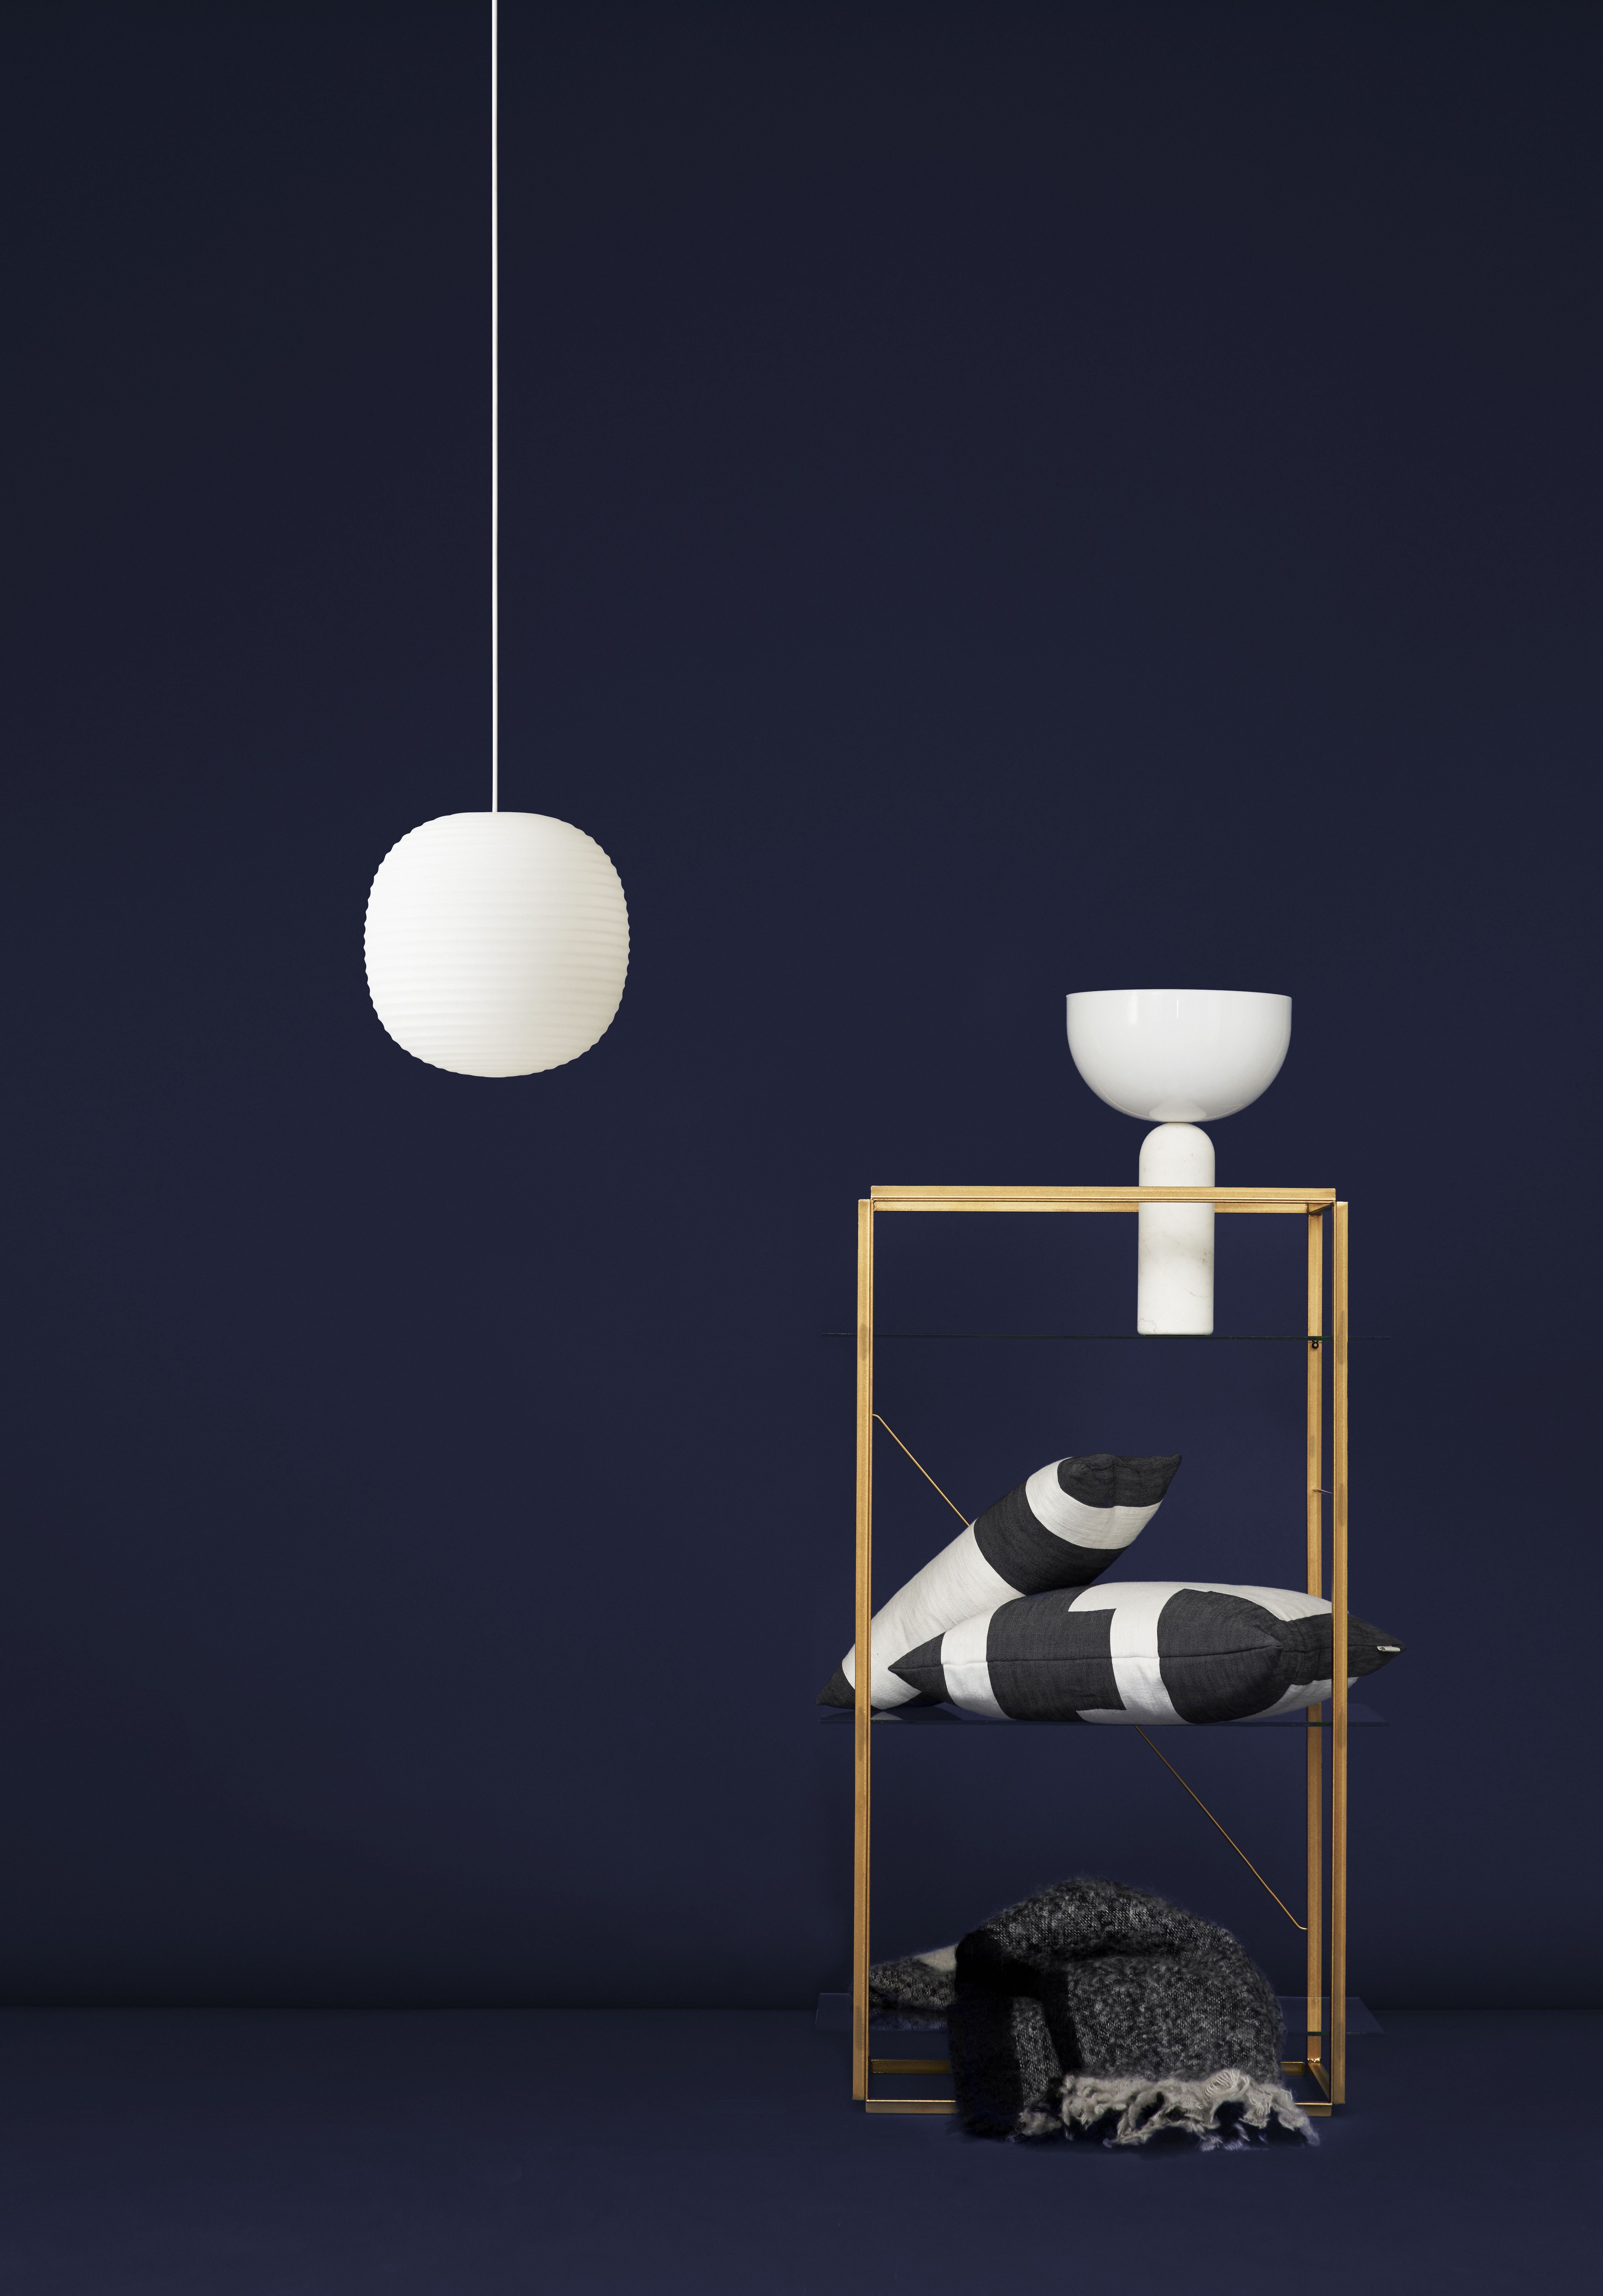 Lampe Blanche New Works The Design Post Mobilier Design Luminaire Luminaire Design